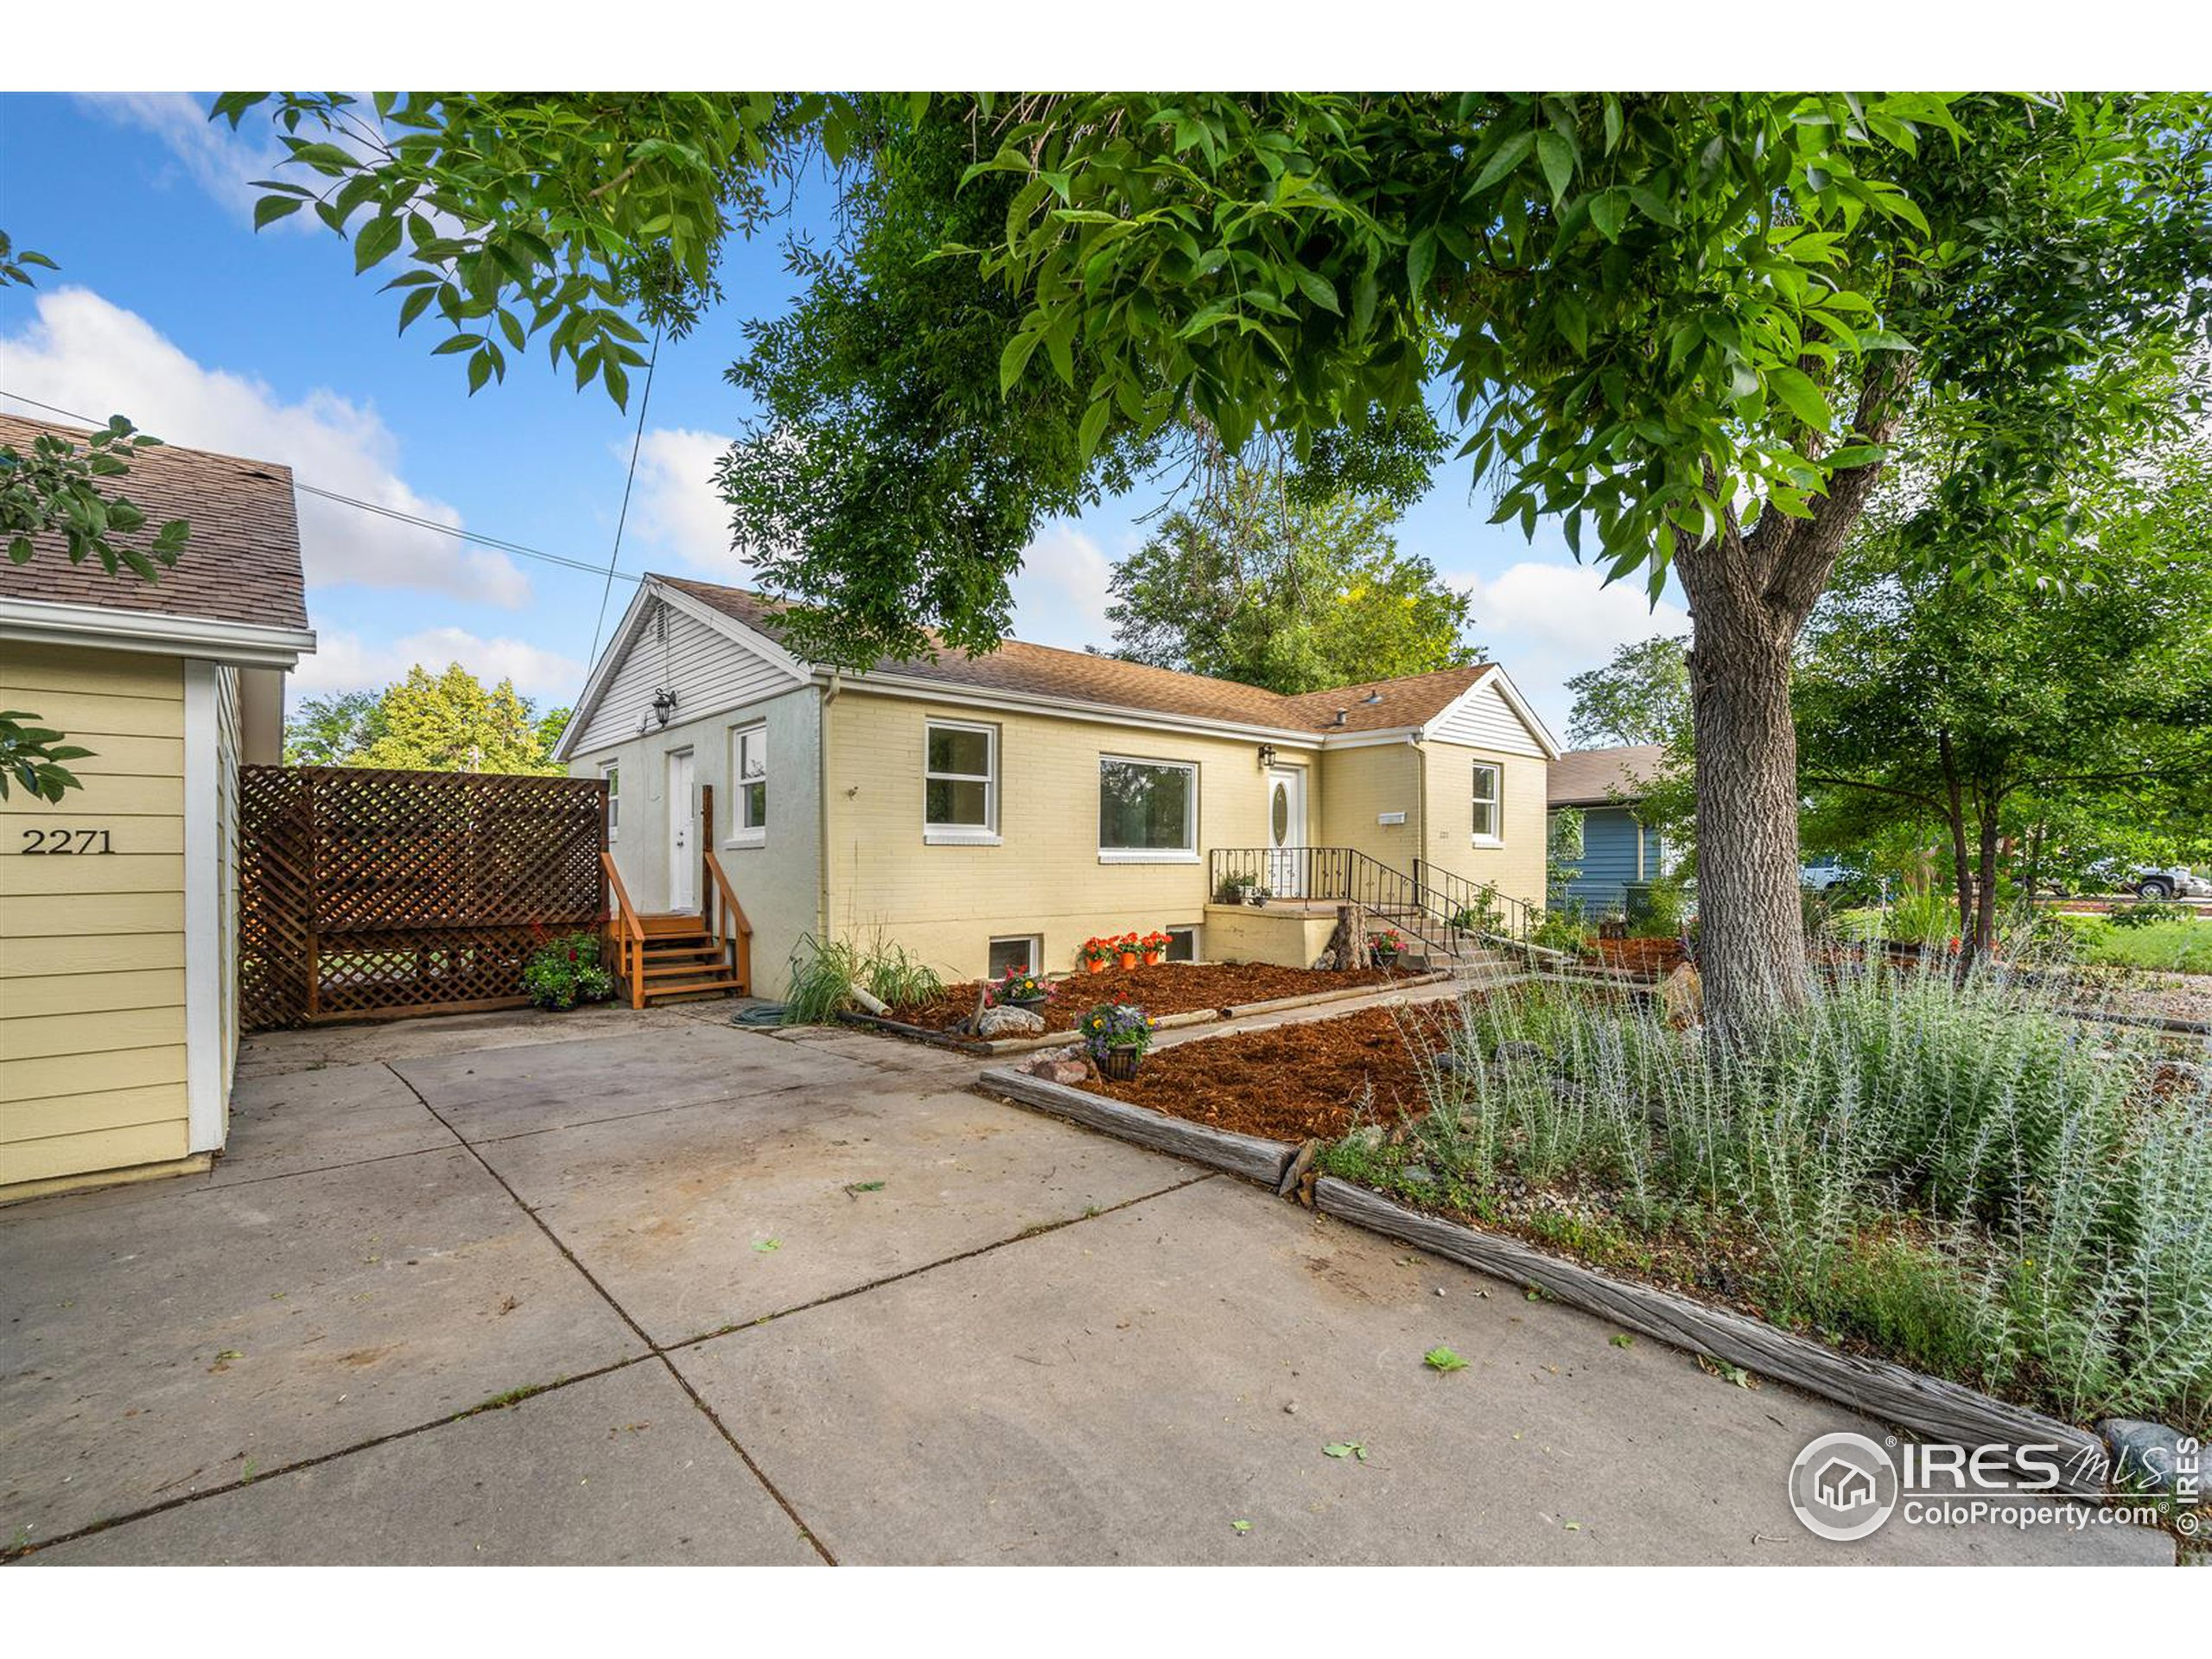 Mature landscaping and great privacy